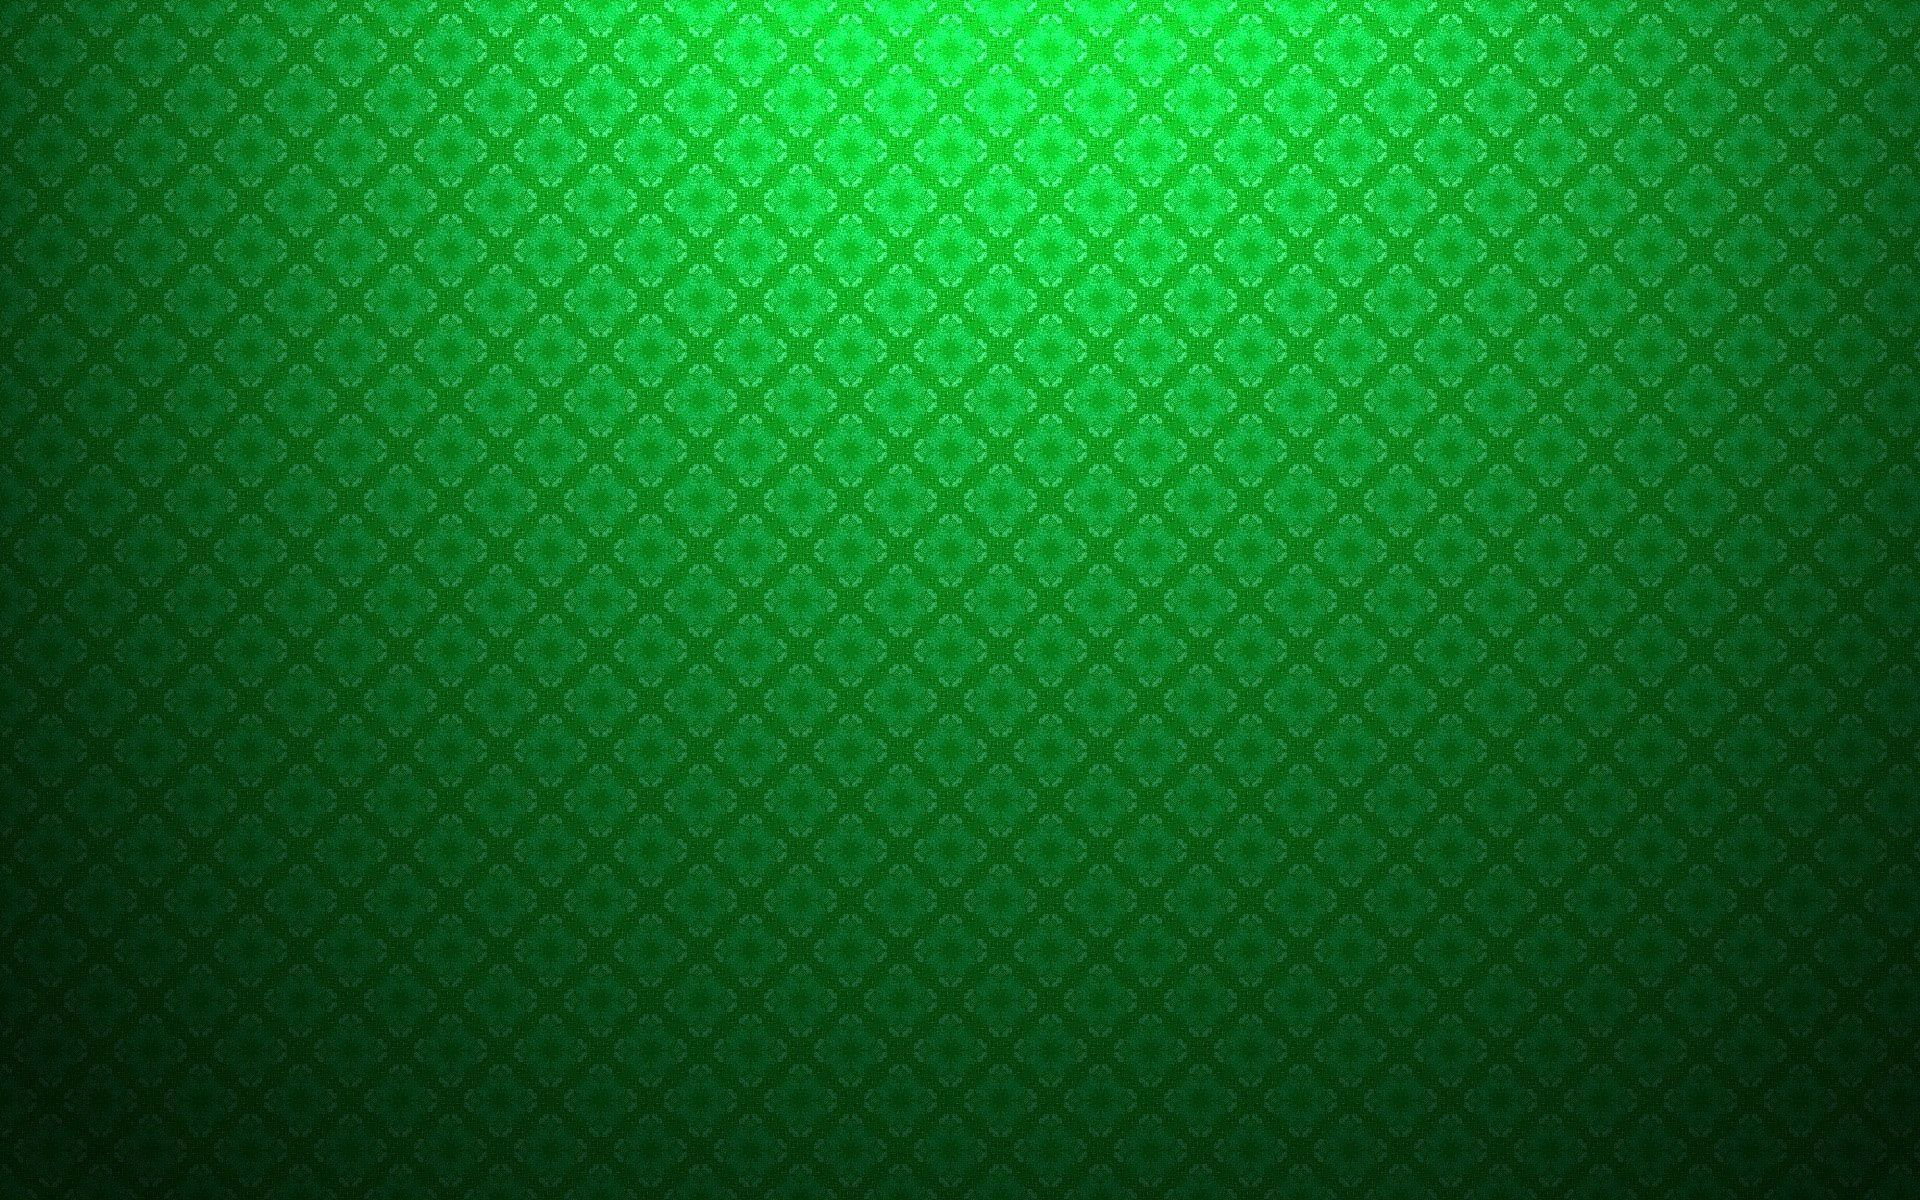 Green Background Design Wallpaper 30 HD Green Wal...